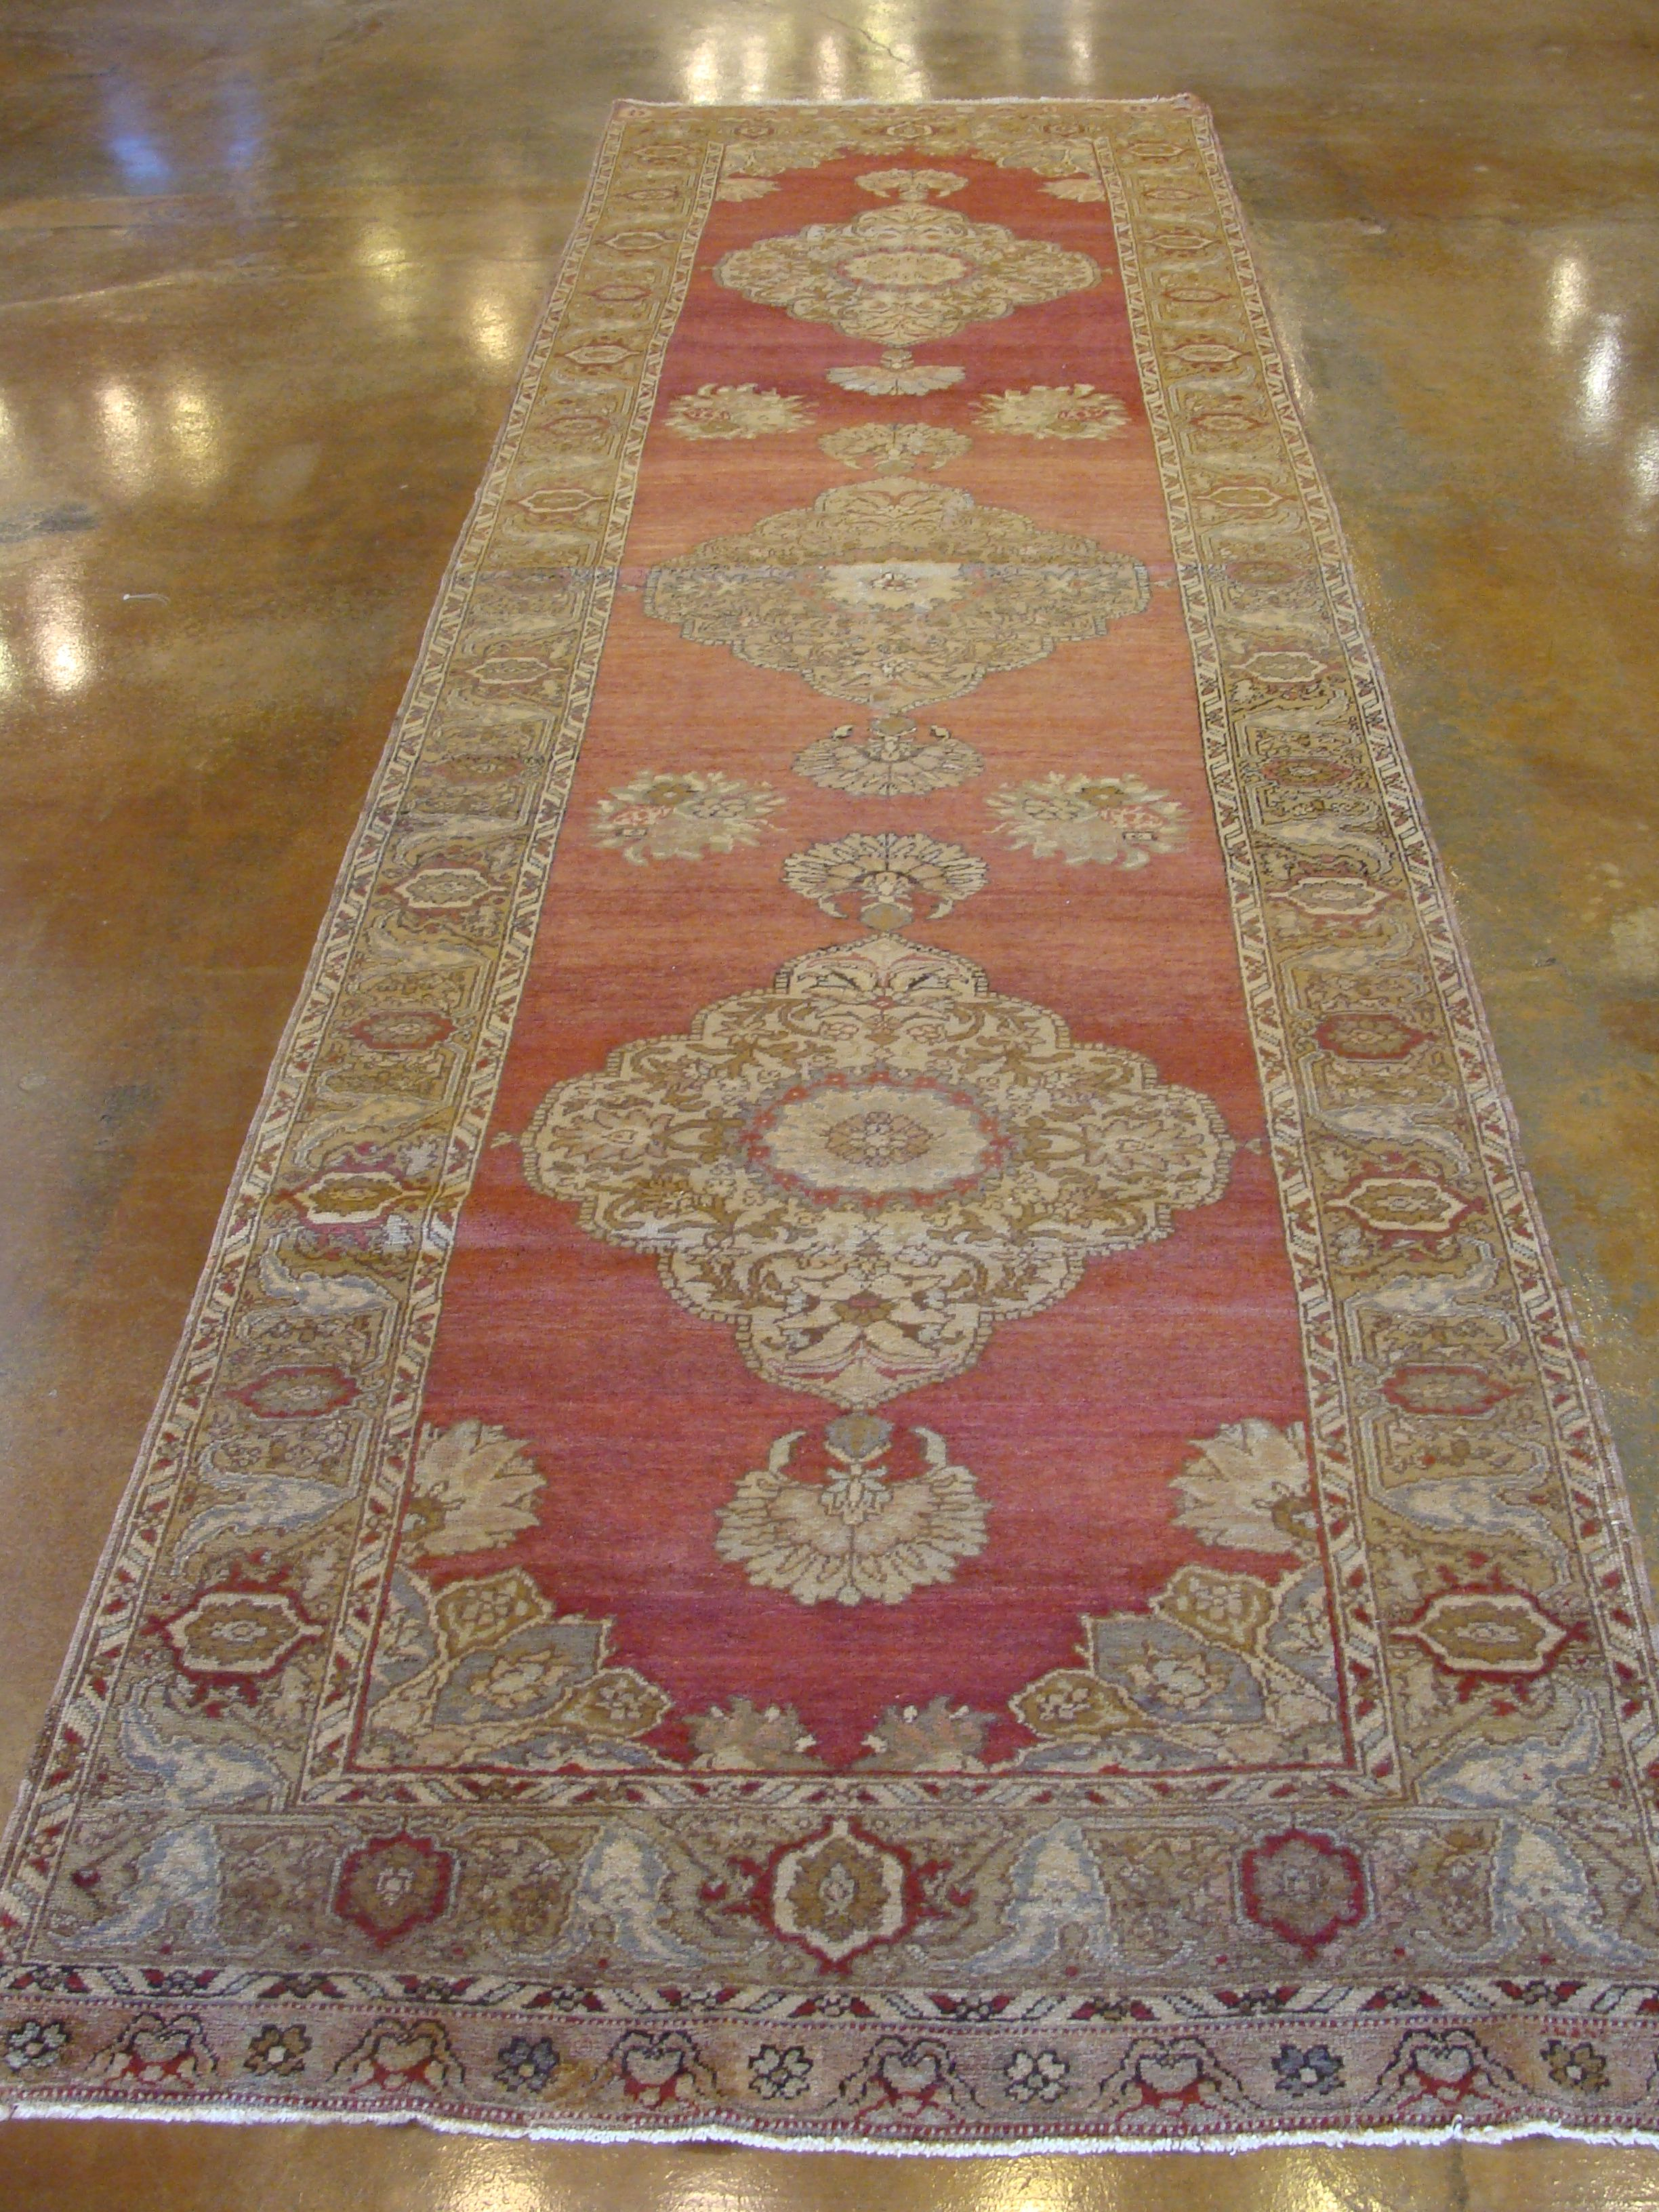 Dallas · FR3950 Antique Turkish Konya. Rugs. Home Décor. Color. Antique  Rugs. Farzin